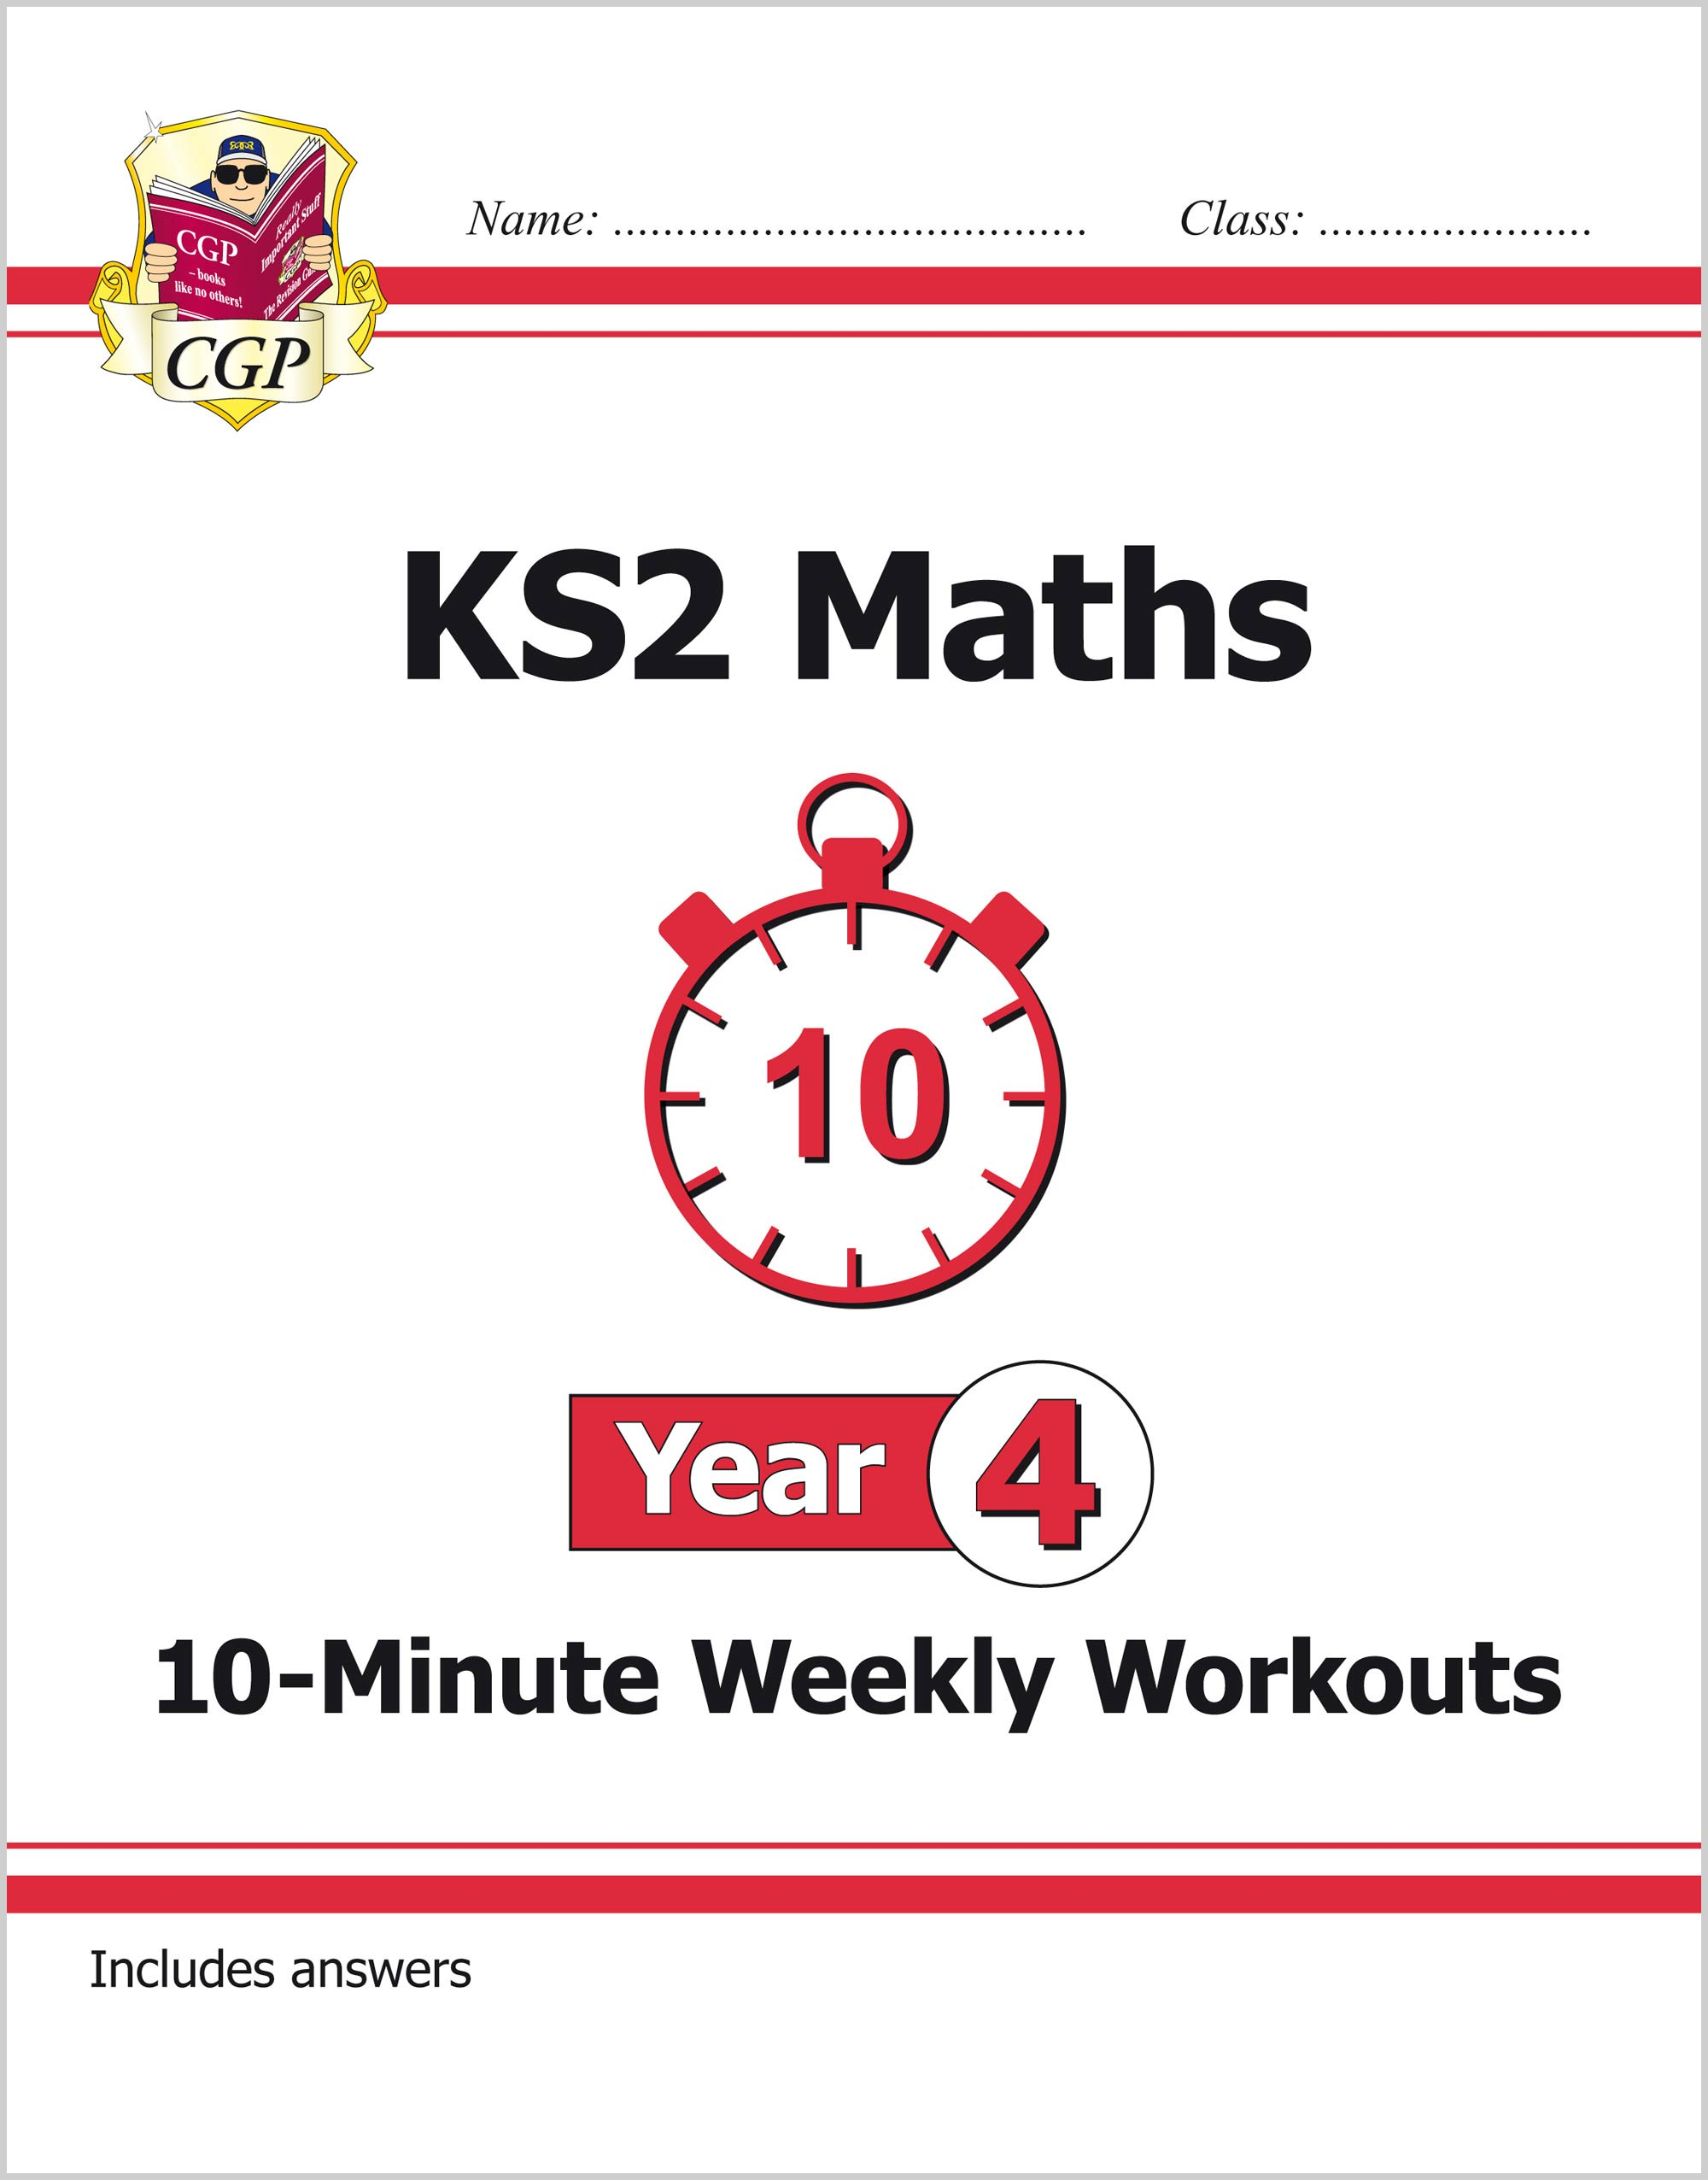 M4XW21 - KS2 Maths 10-Minute Weekly Workouts - Year 4